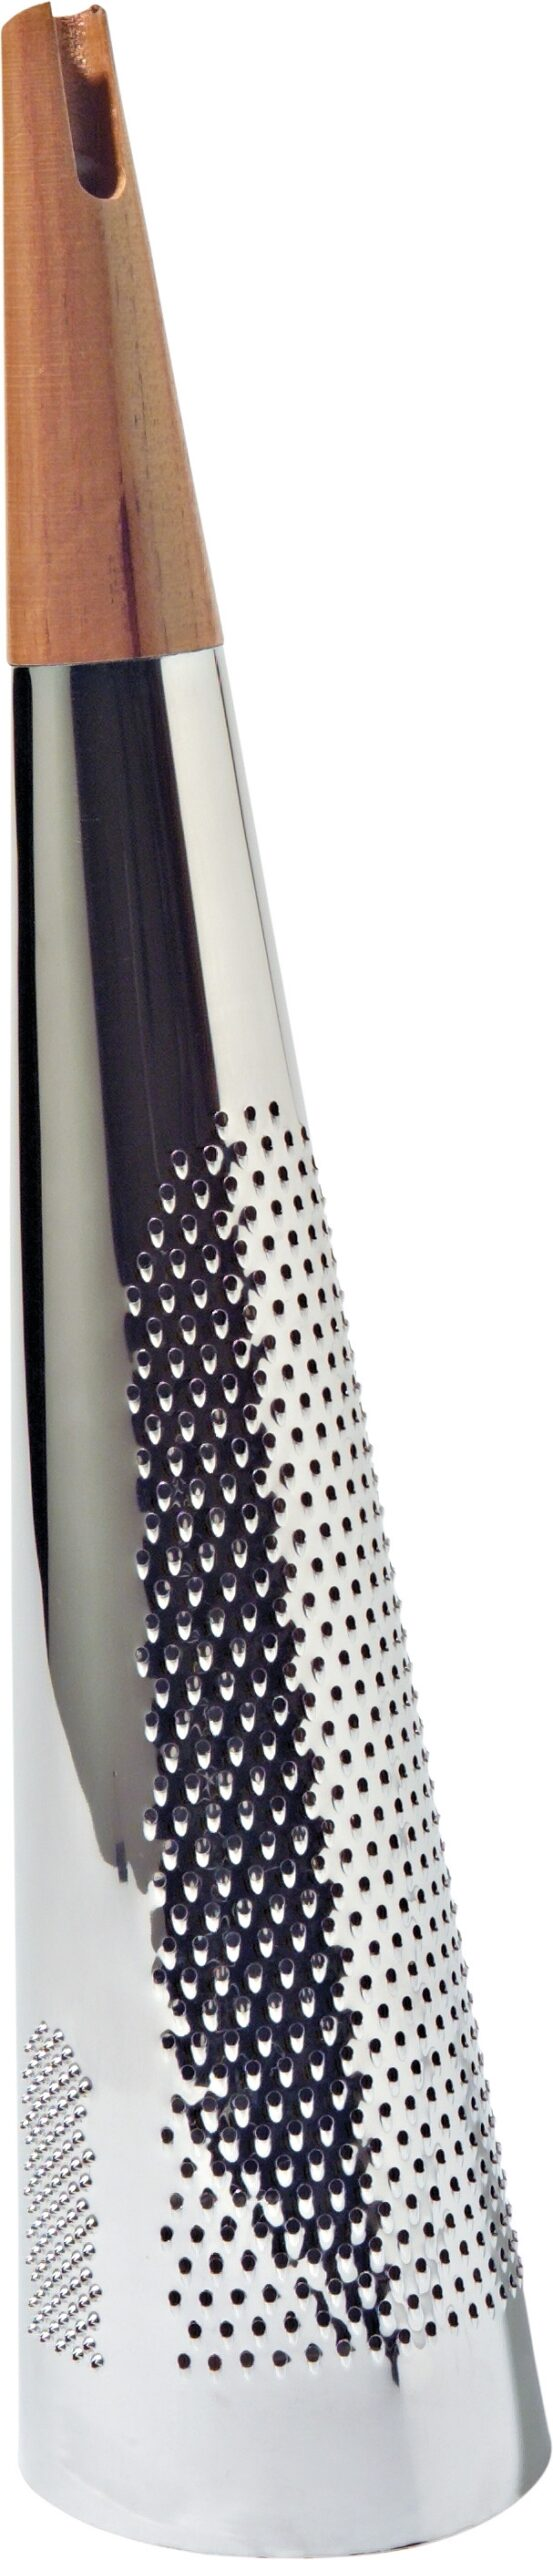 Alessi Cheese Grater Todo